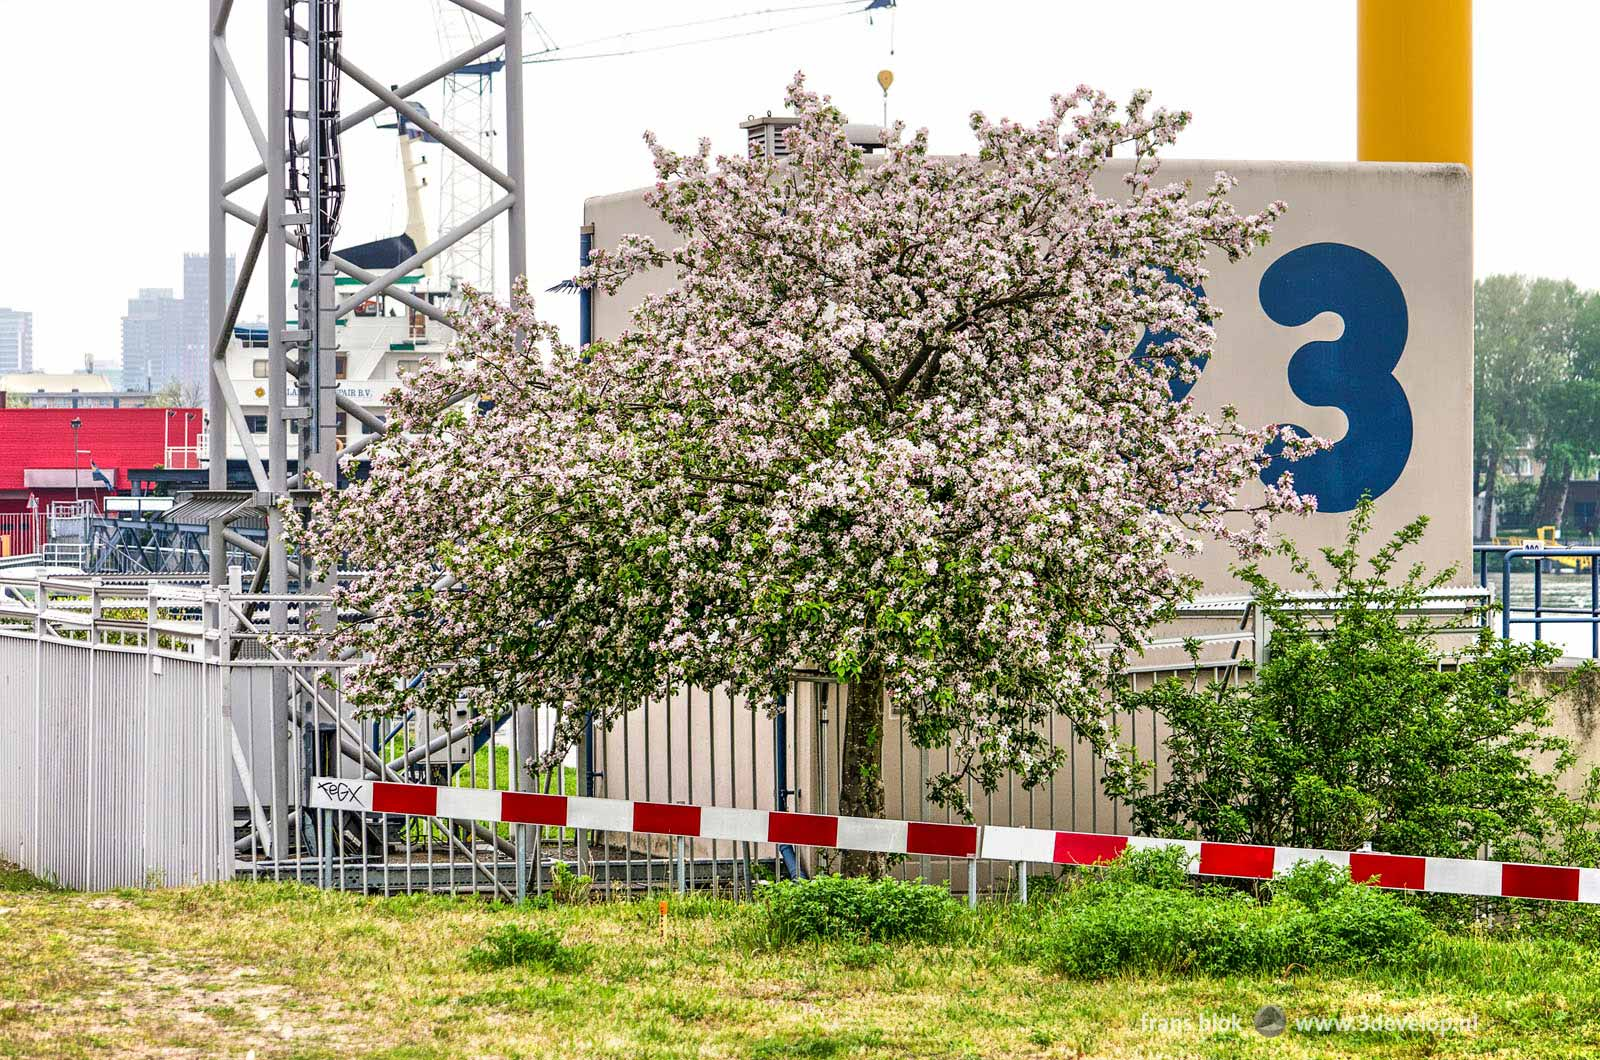 Blooming prunus tree on a somewhat odd location on an industrial zone in the Rotterdam district of Feijenoord